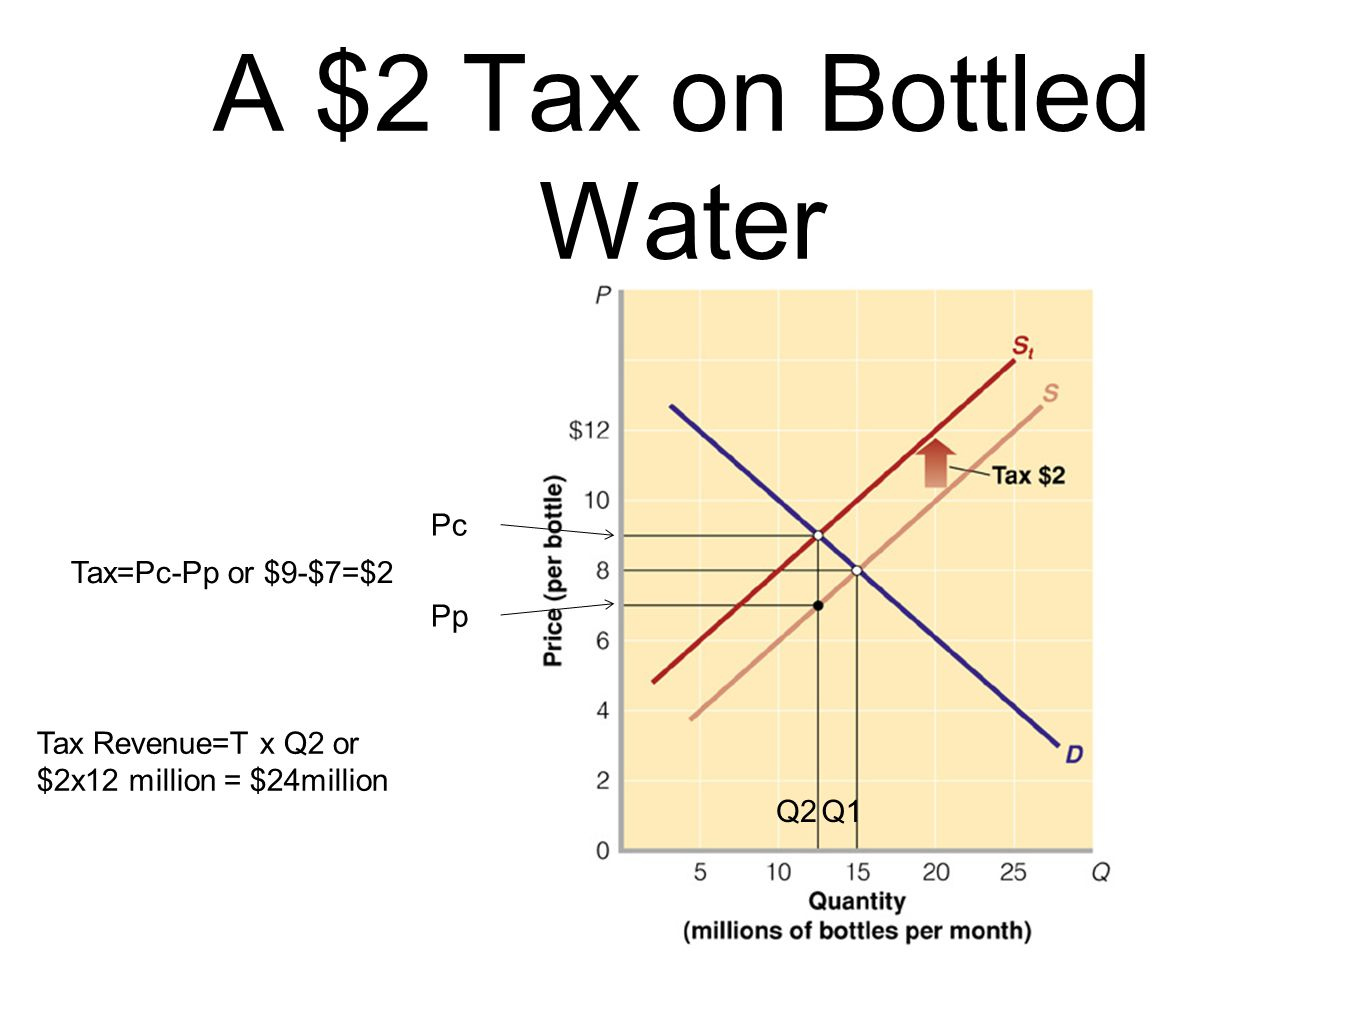 A $2 Tax on Bottled Water Pc Tax=Pc-Pp or $9-$7=$2 Pp